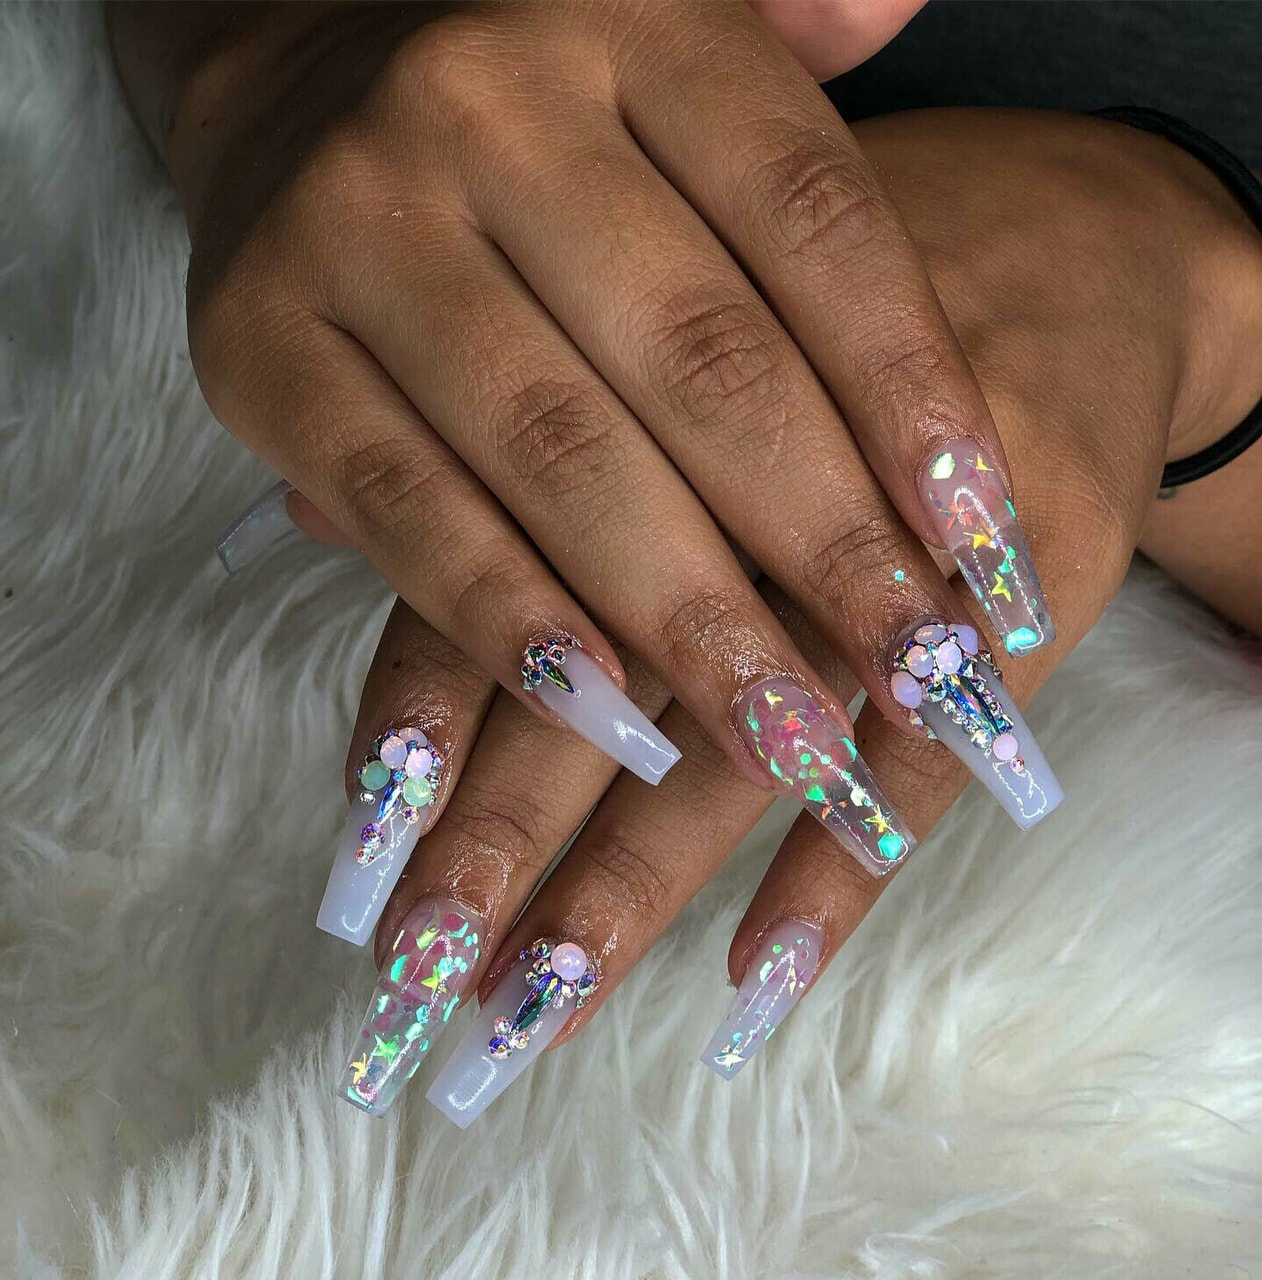 style, gel nails, fashion and claws